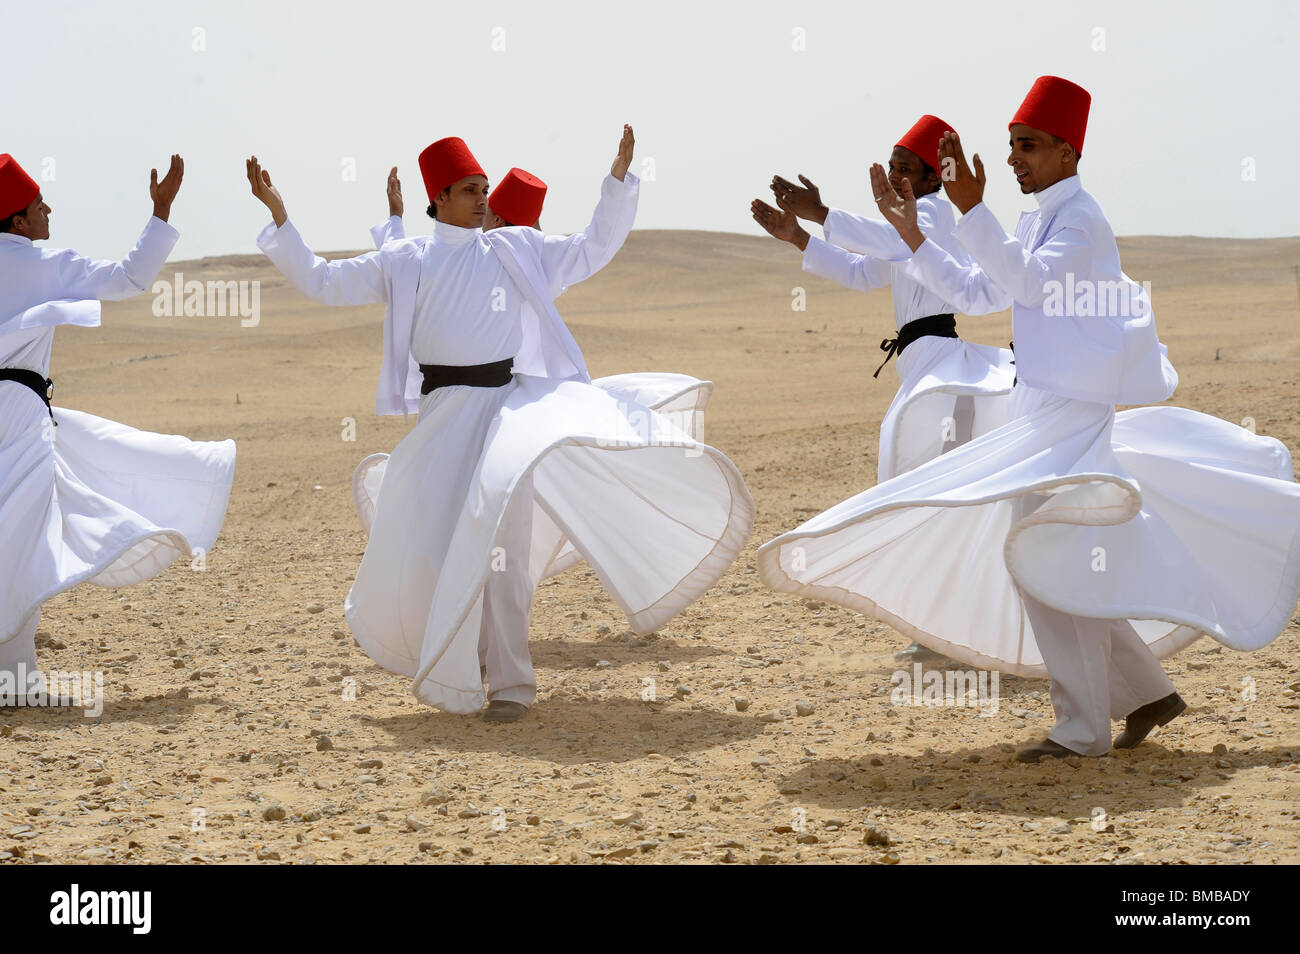 Whirling Dervishes performing at the pyramids of giza,Giza Necropolis bordering what is now El Giza, cairo , egypt - Stock Image